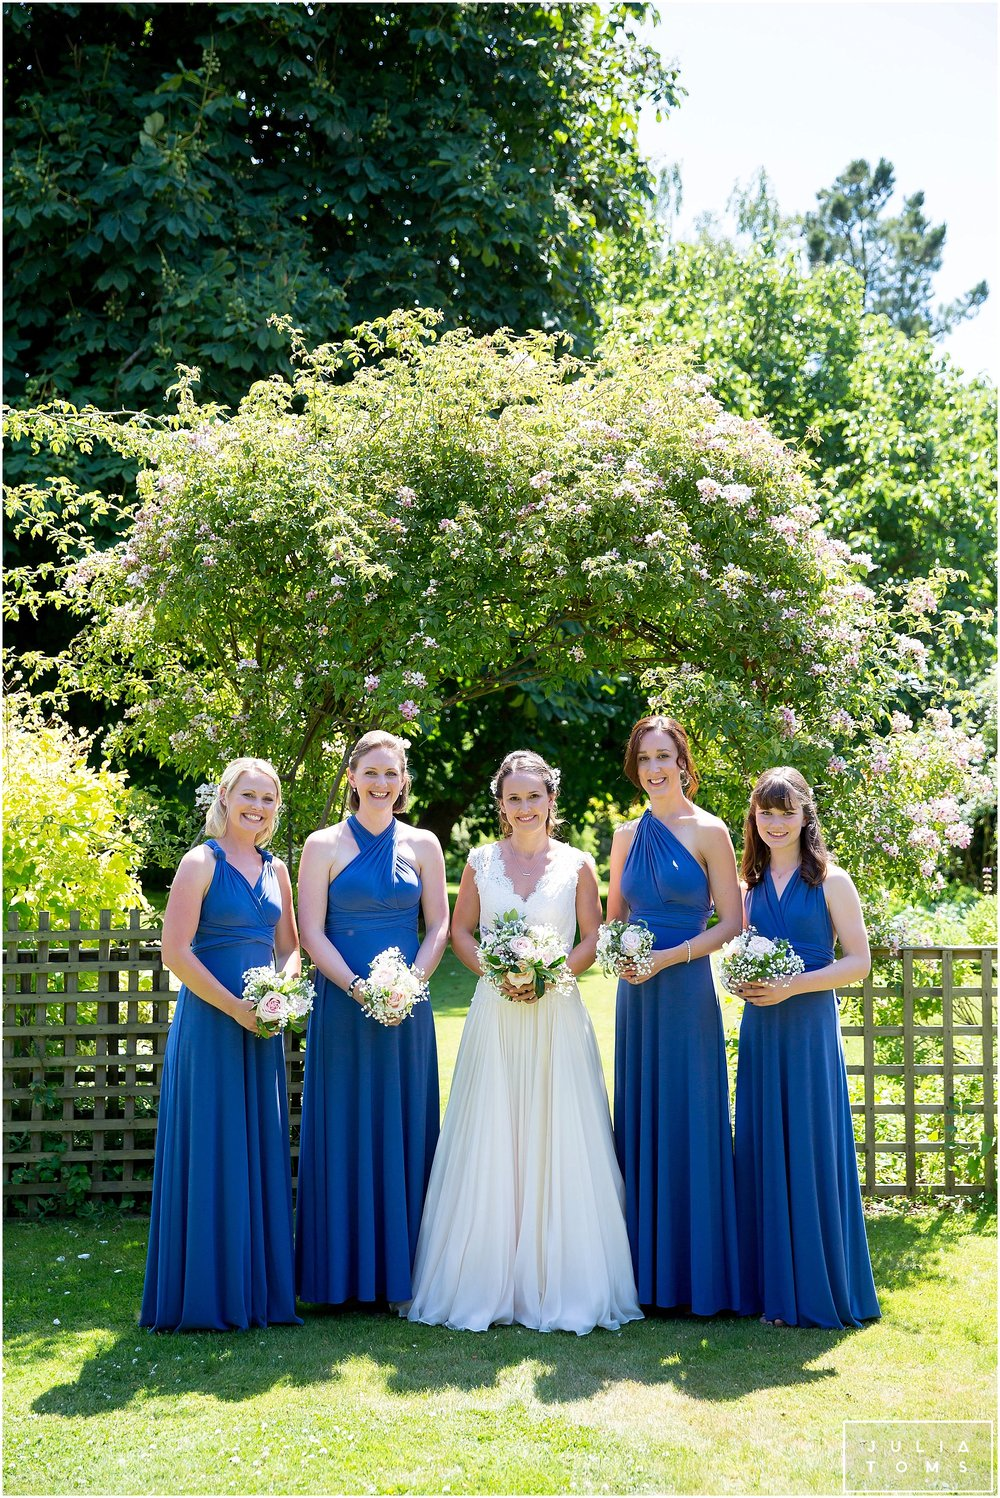 julia_toms_chichester_wedding_photographer_portsmouth_014.jpg